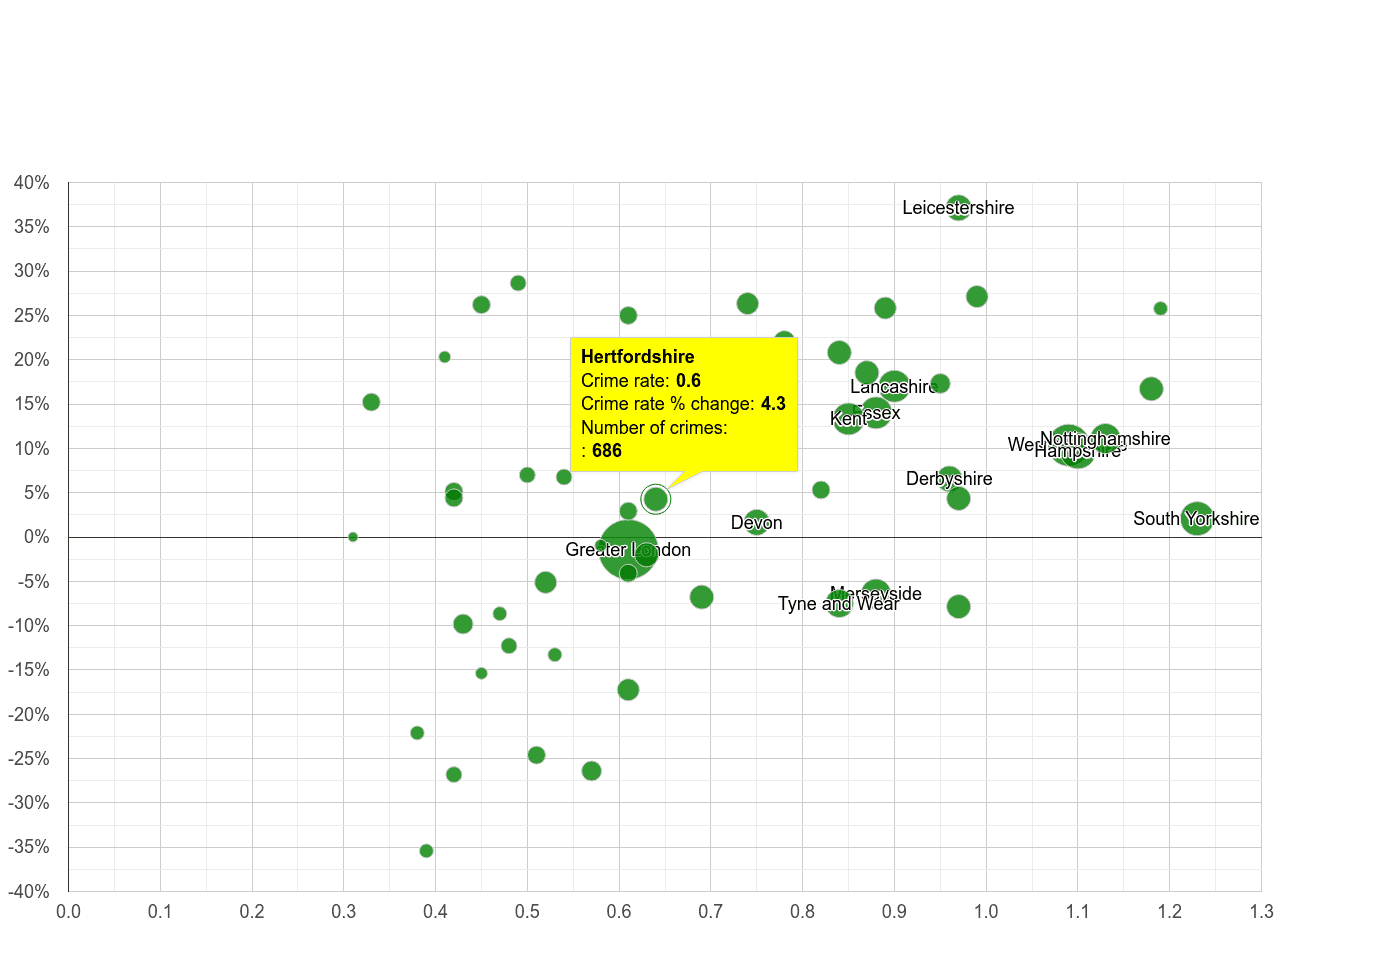 Hertfordshire possession of weapons crime rate compared to other counties